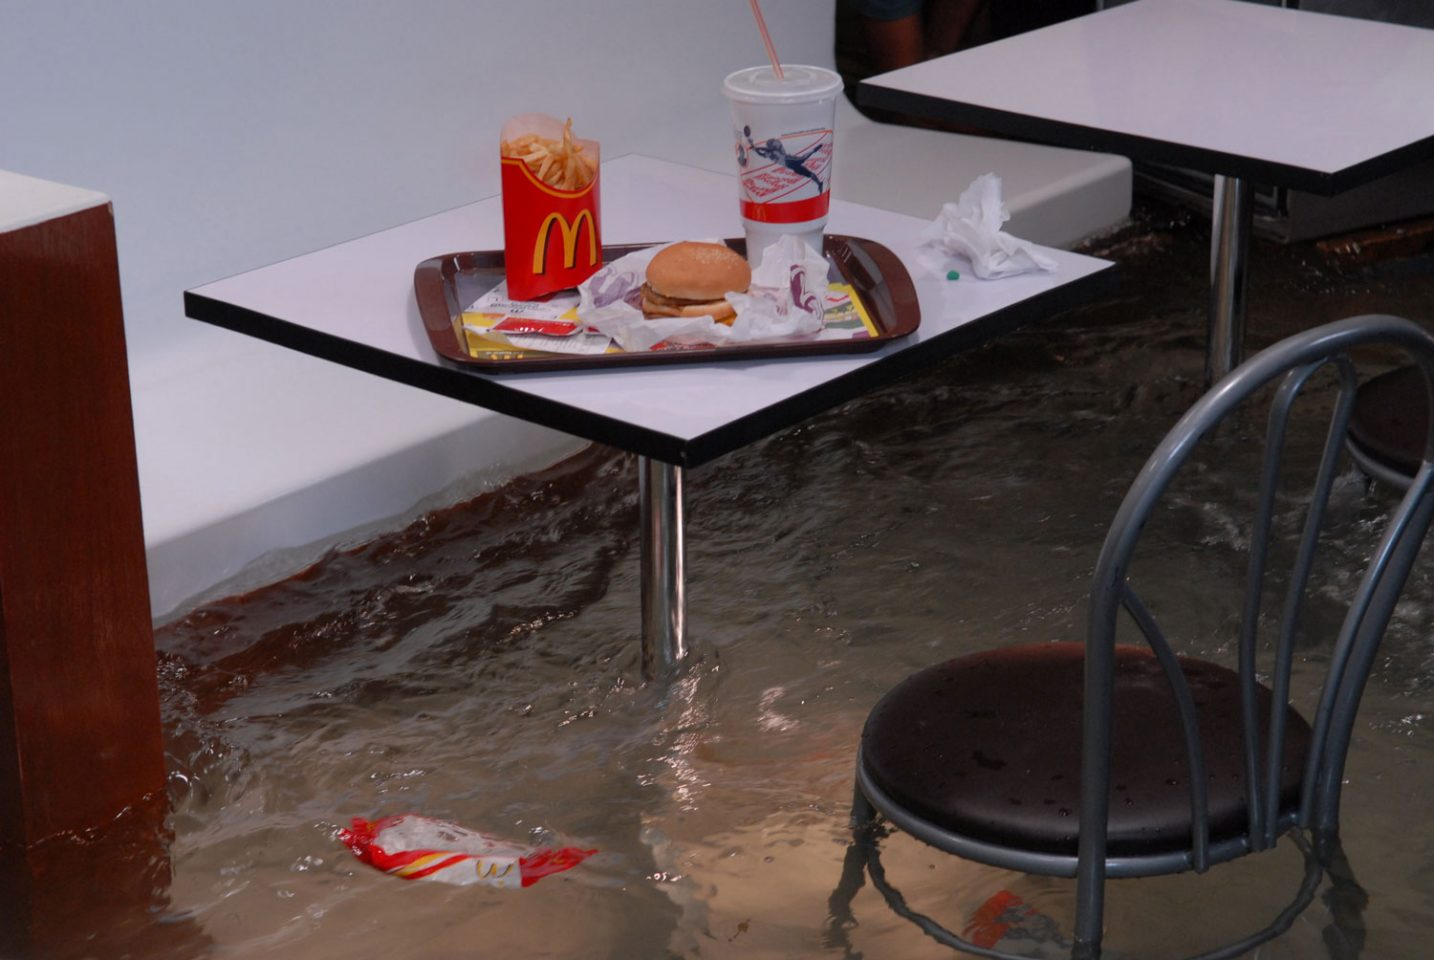 Superflex: Flooded McDonald's